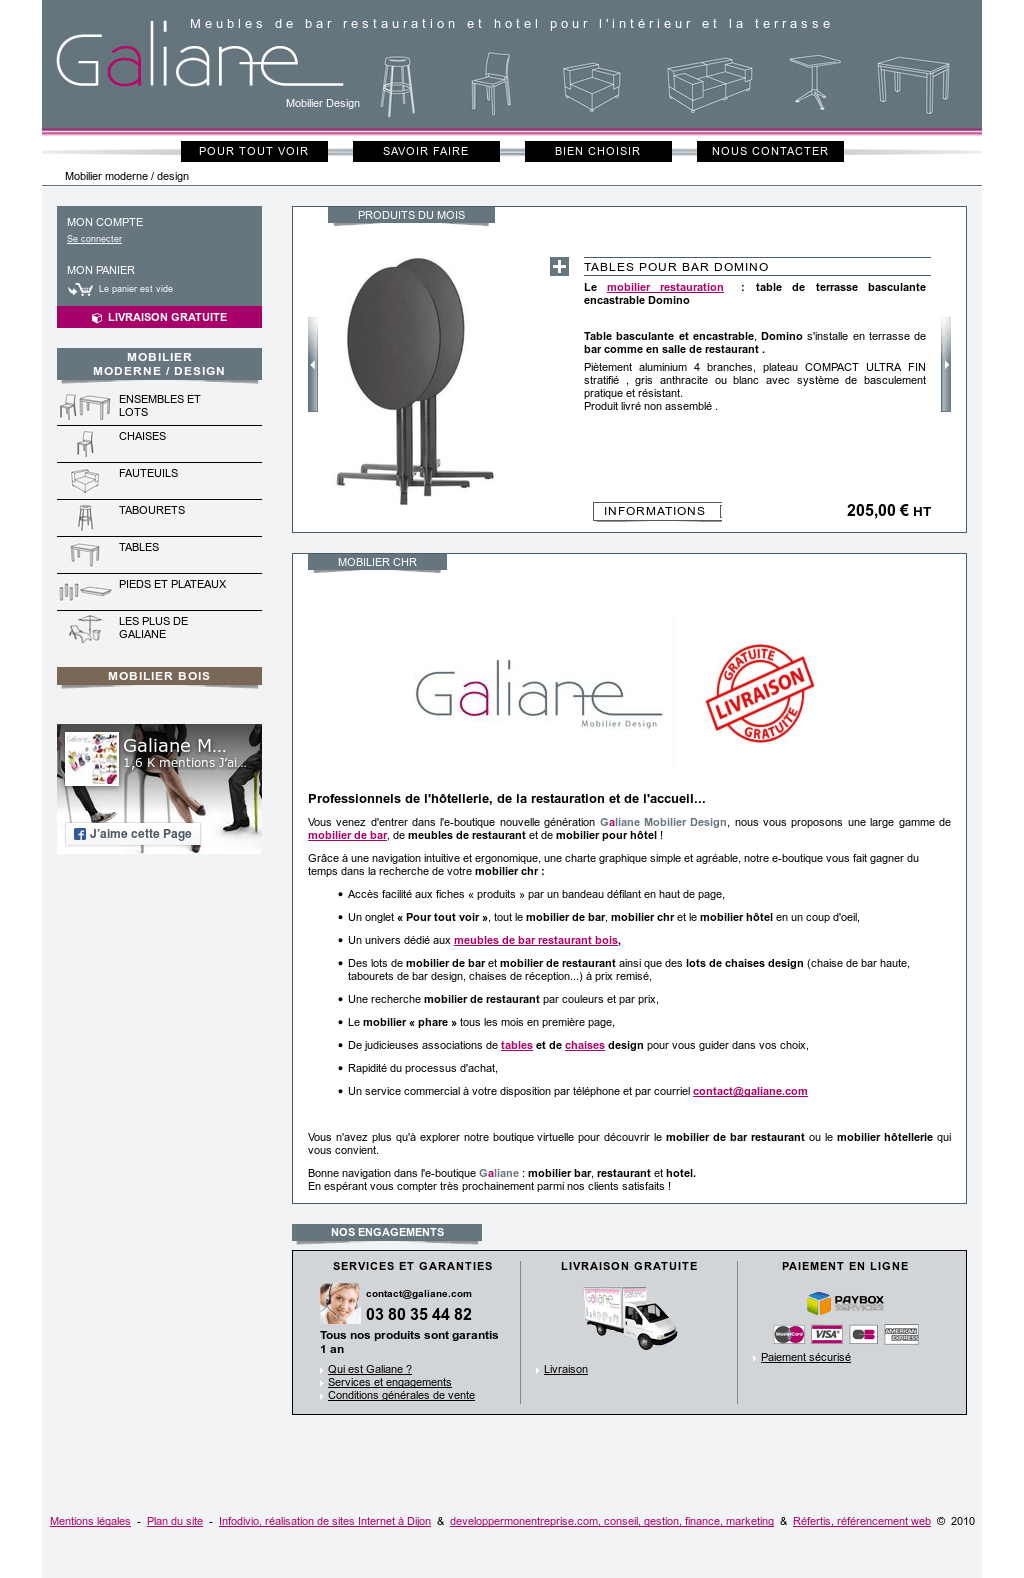 Achat Mobilier Restaurant Galiane Mobilier Design Competitors Revenue And Employees Owler